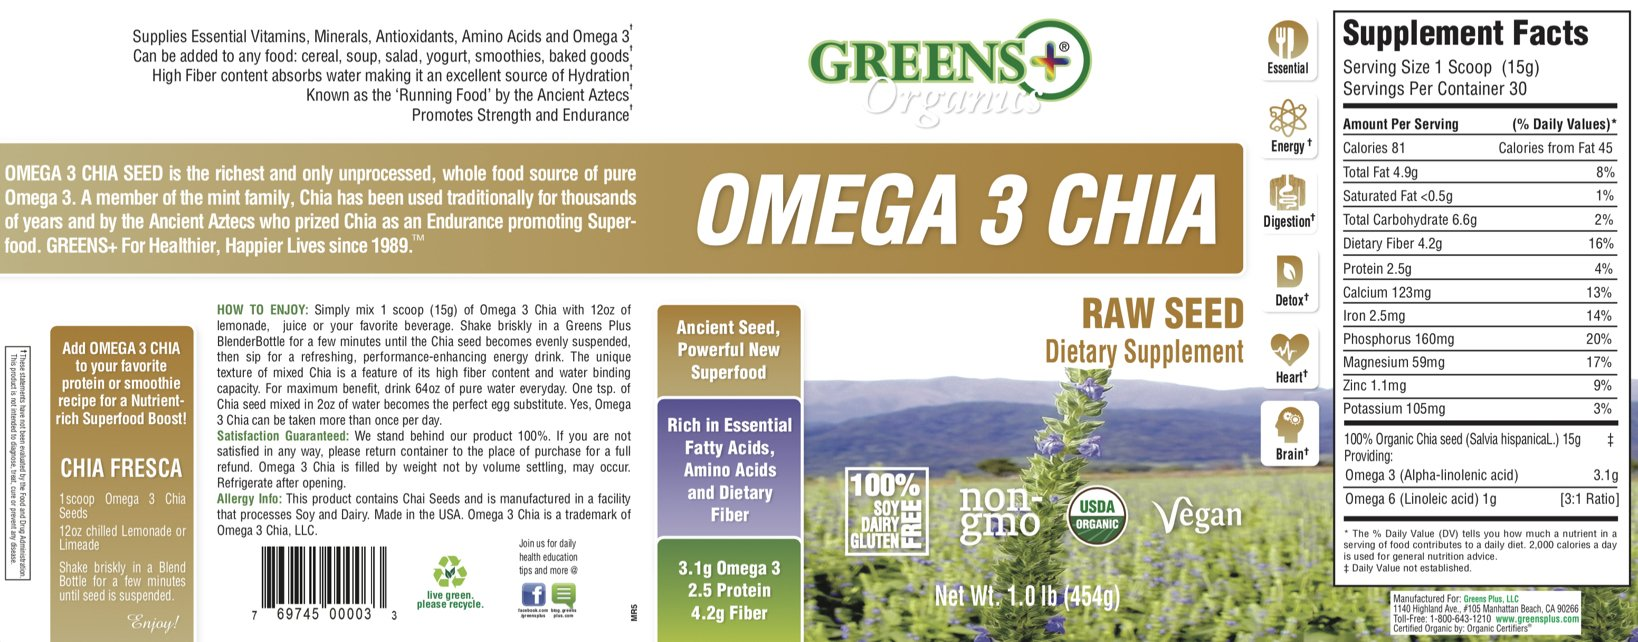 Organic Omega3 Chia Ancient Raw Seed | Dietary Food Supplement | Source of Hydration & Powerful Superfood | Non-GMO, Soy, Dairy & Gluten-Free | 1 lb Jar | by Greens+